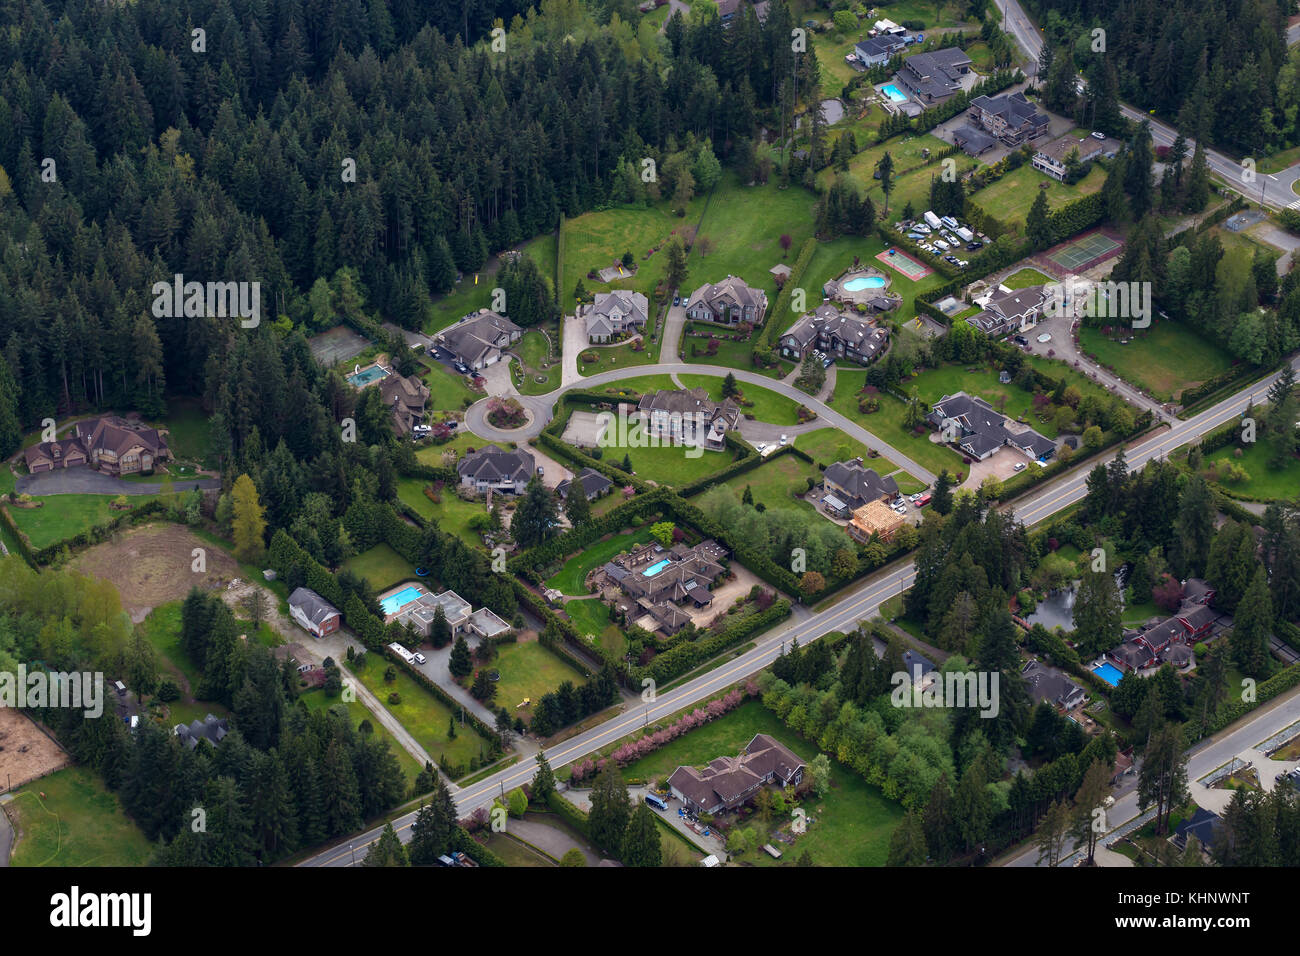 Luxury Homes In Anmore, Greater Vancouver, British Columbia, Canada. Viewed  From An Aerial Perspective.